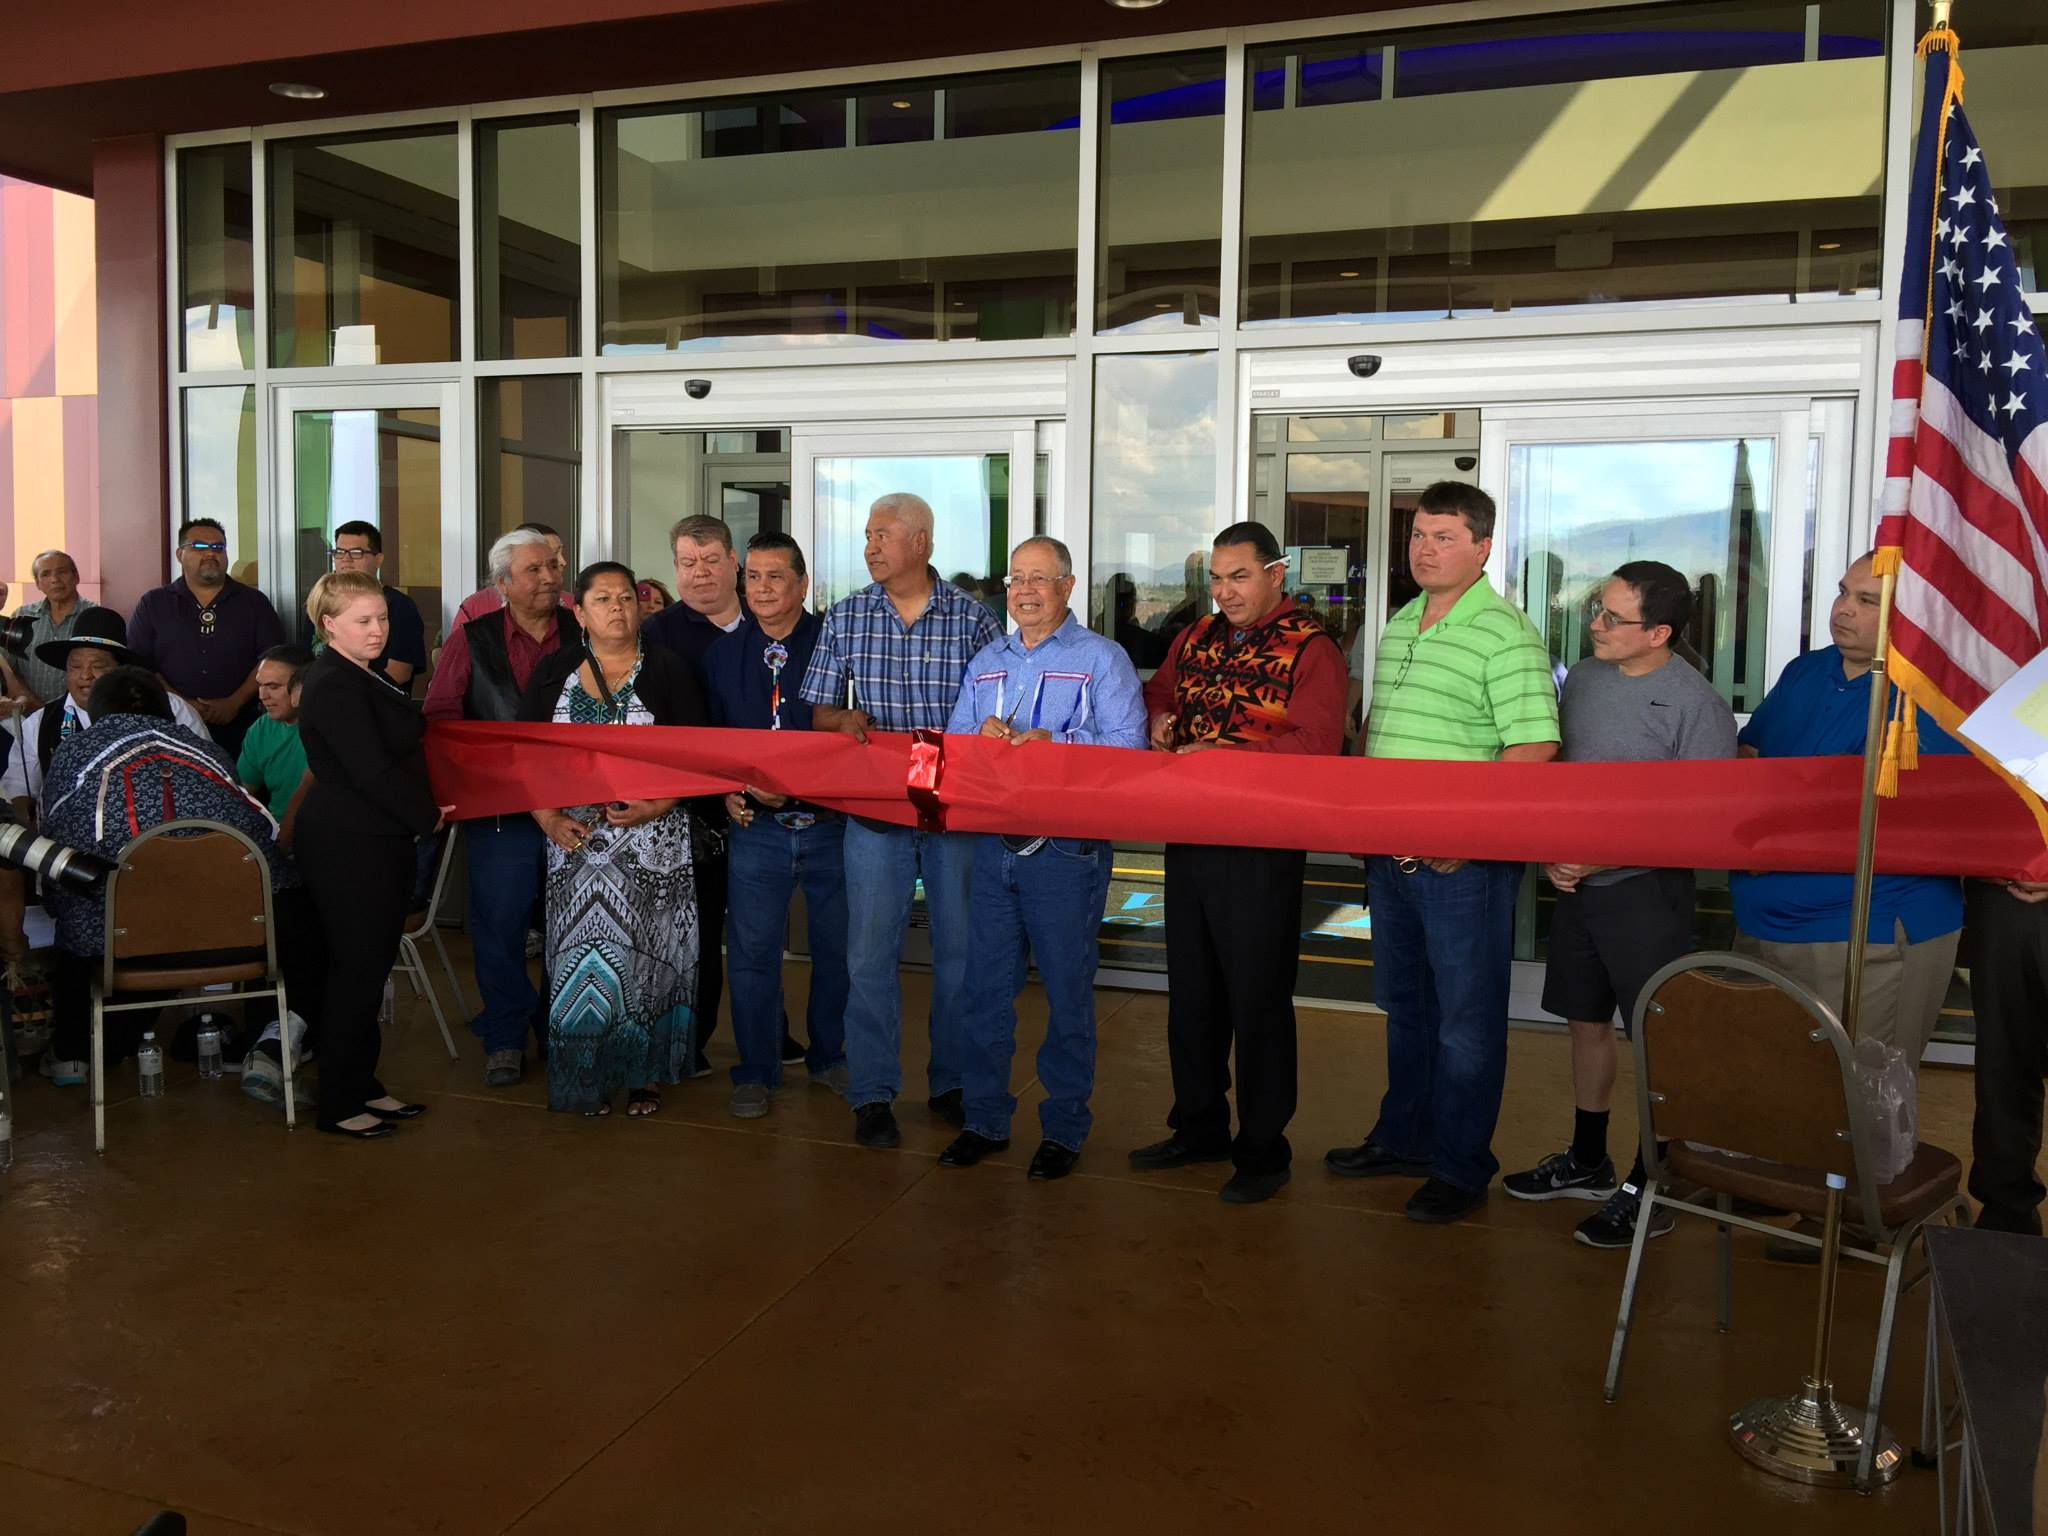 Colville Tribes welcome public to $43M flagship gaming facility